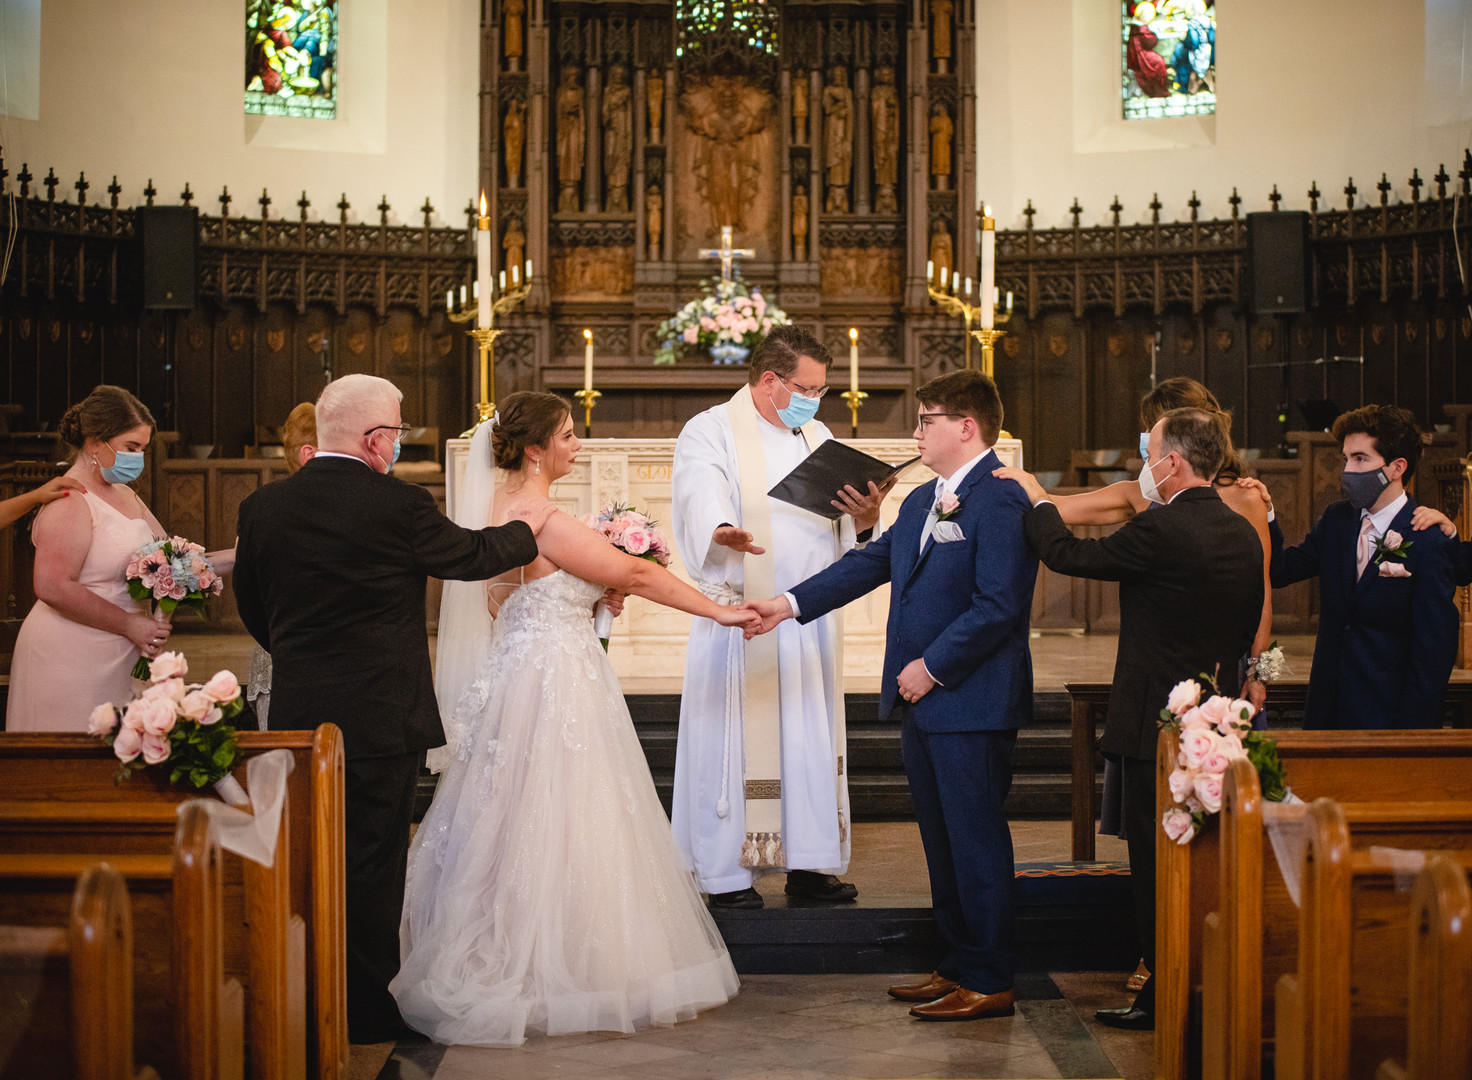 wedding ceremony in a church during covid-19 pandemic